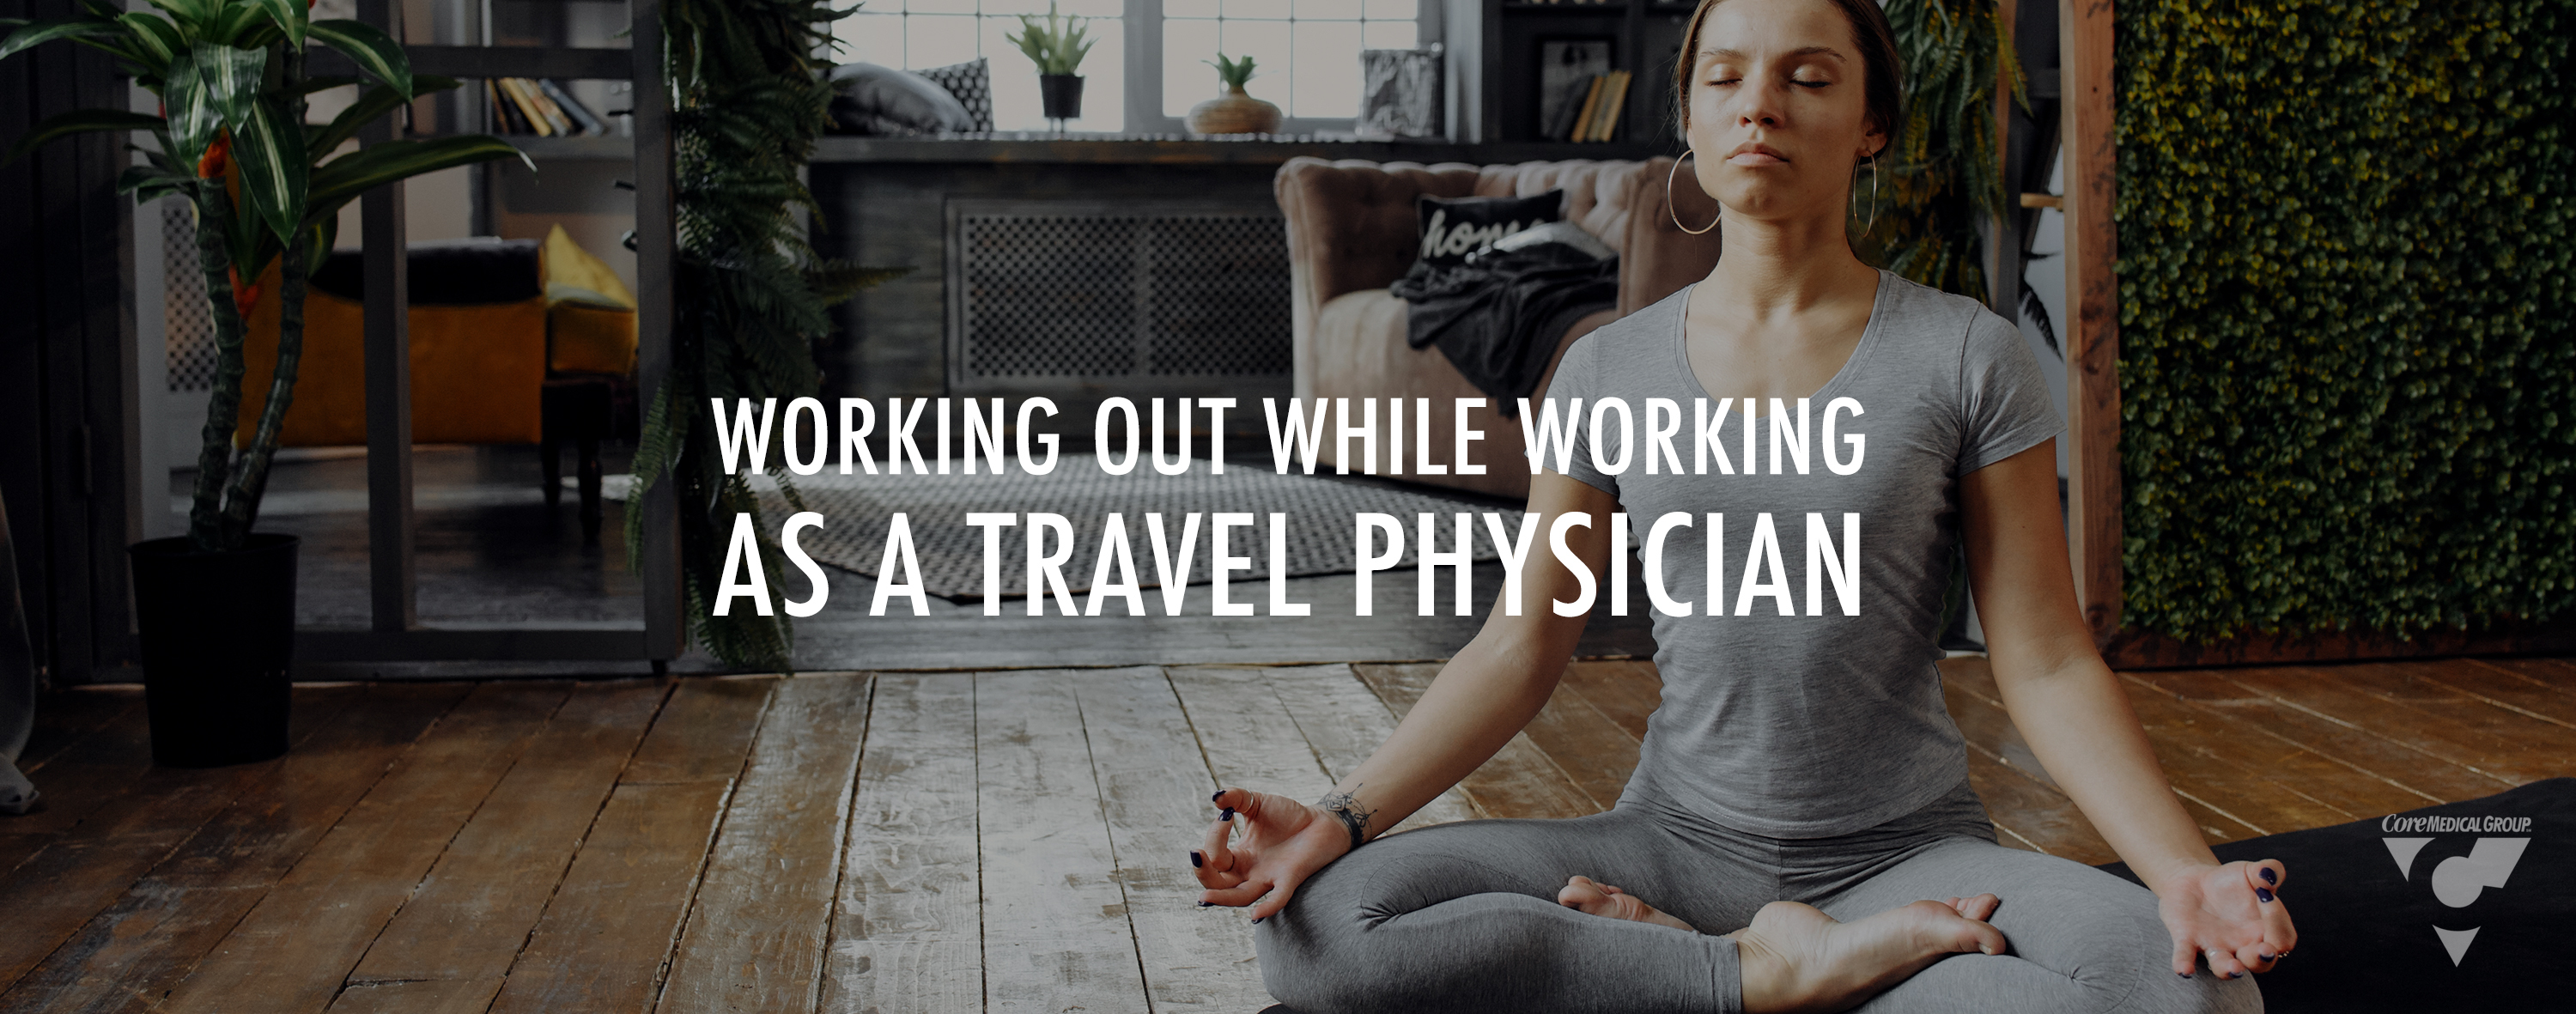 Working out while a travel physician